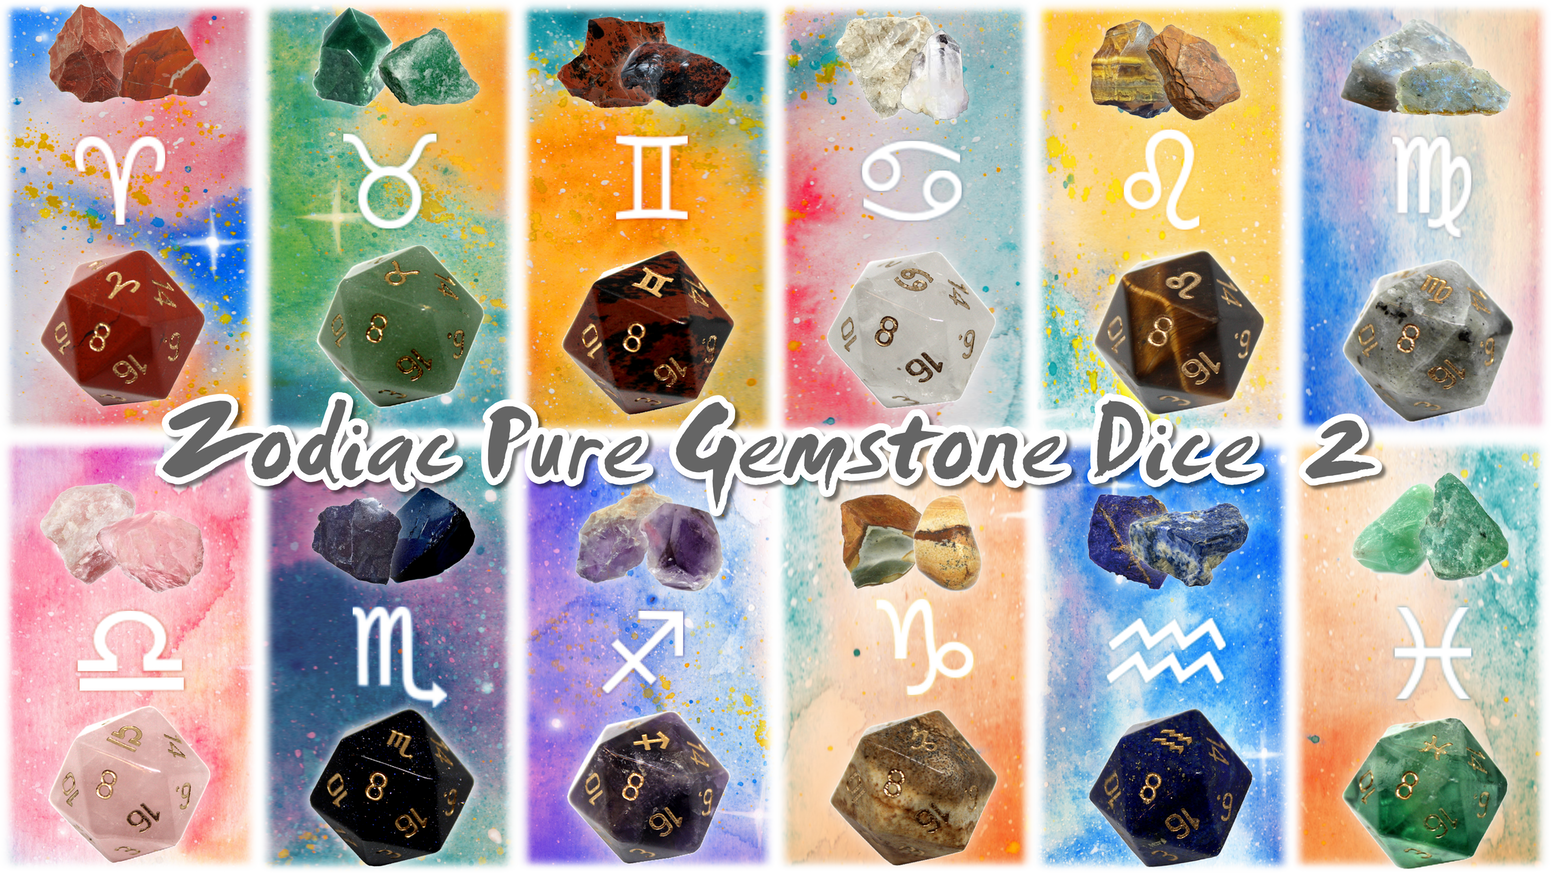 Polyhedral Gemstone dice with Zodiac symbols engraved into them. For collections, dungeons and dragons, board games and tabletop games.